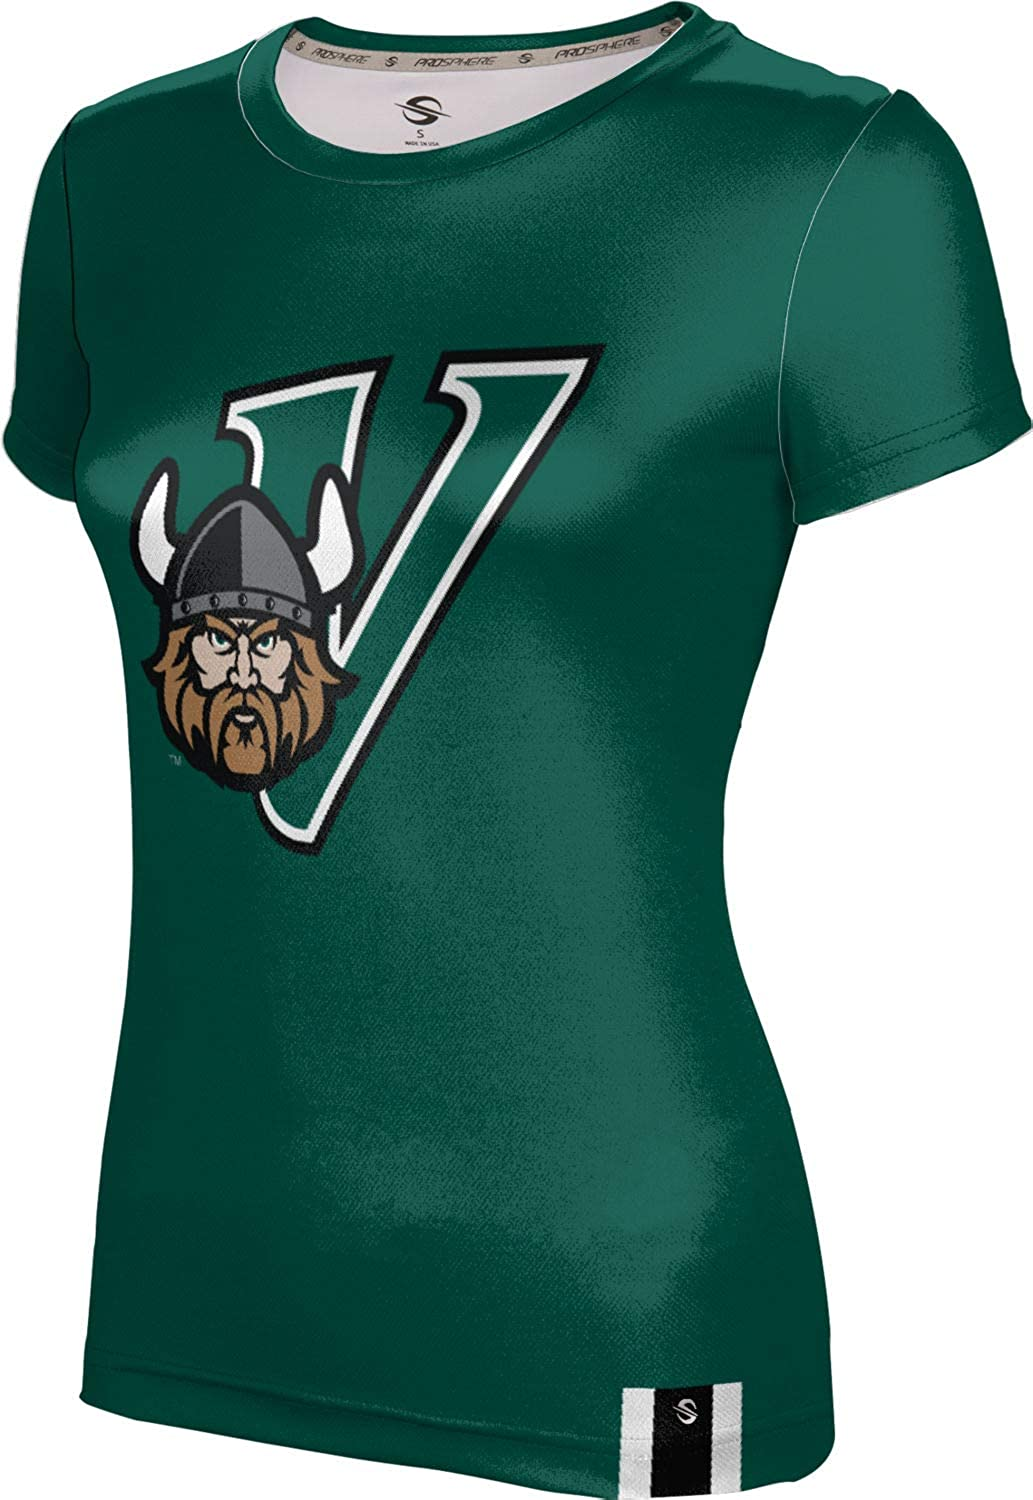 ProSphere Cleveland State University Girls' Performance T-Shirt (Solid)